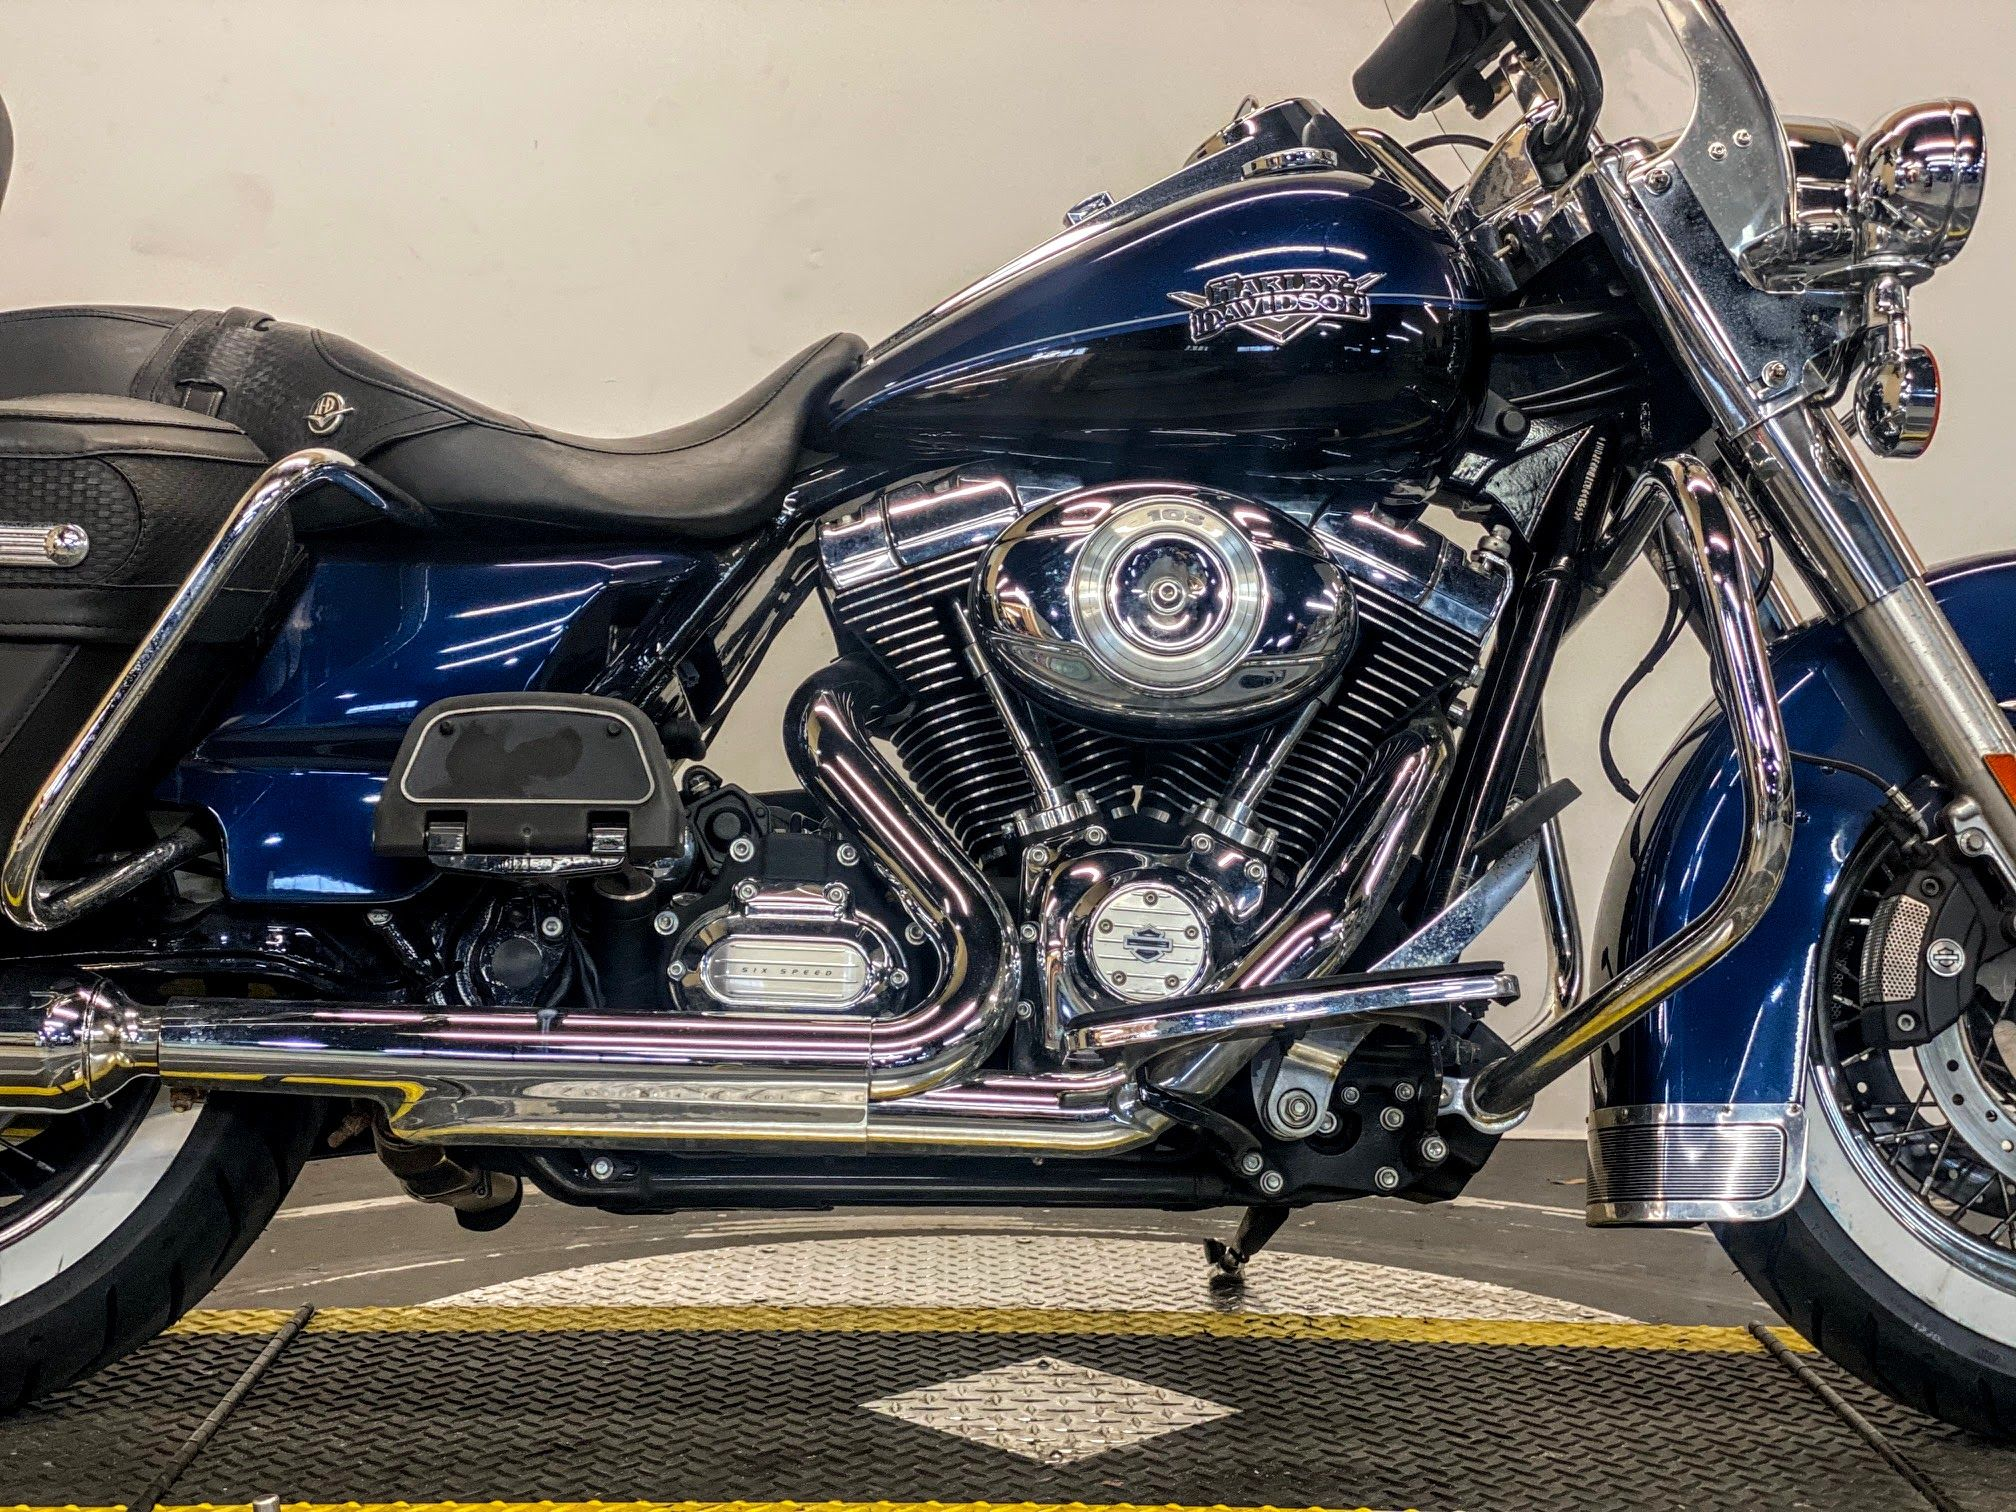 Pre-Owned 2012 Harley-Davidson Road King Classic FLHRC